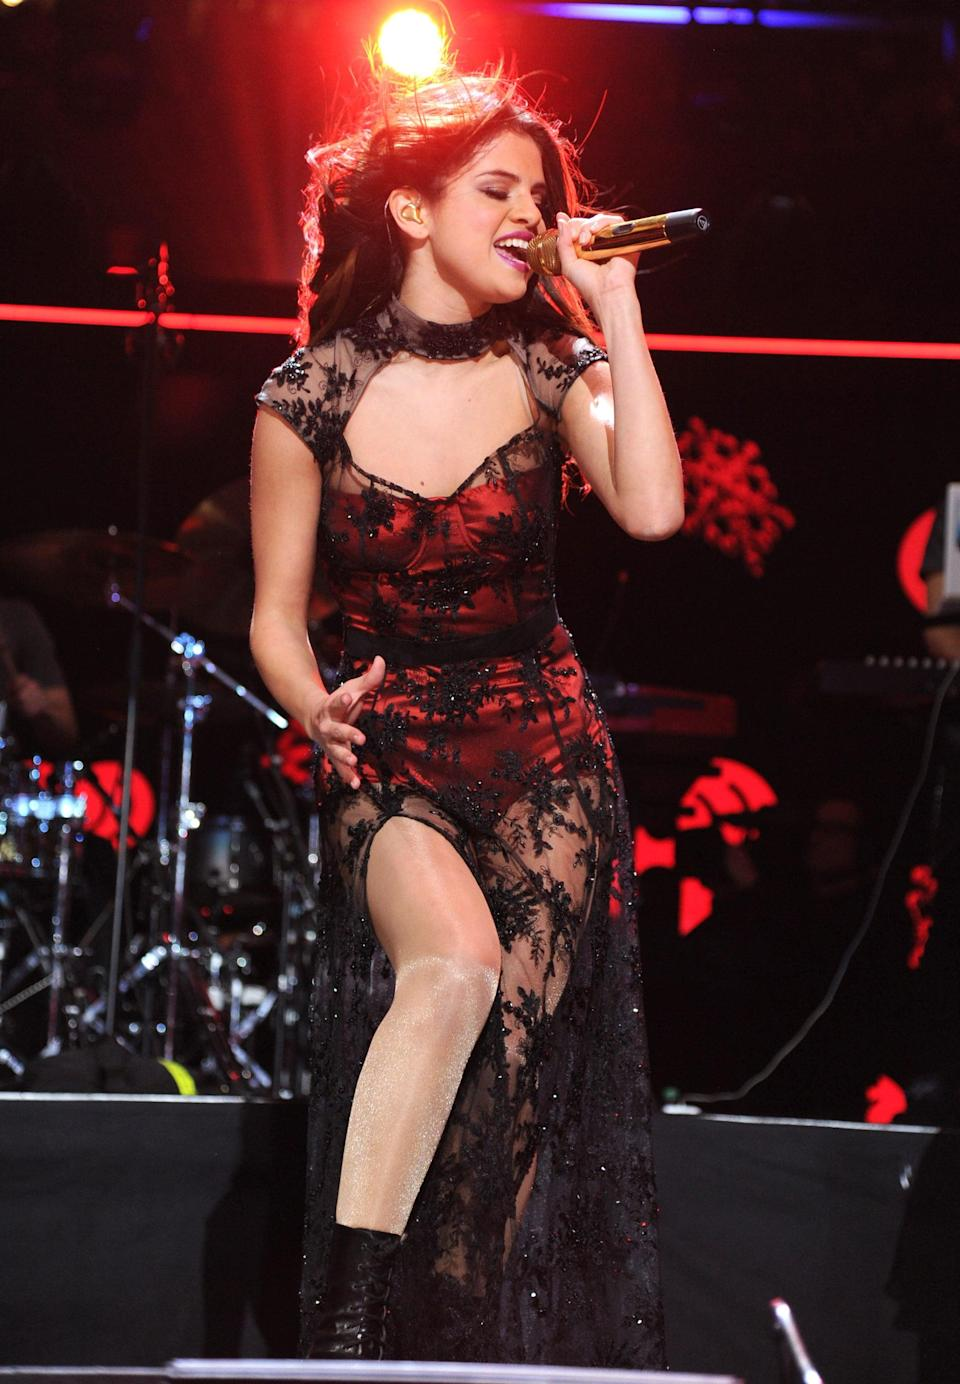 <p>She vamped things up during a performance at Z100's Jingle Ball in NYC.</p>